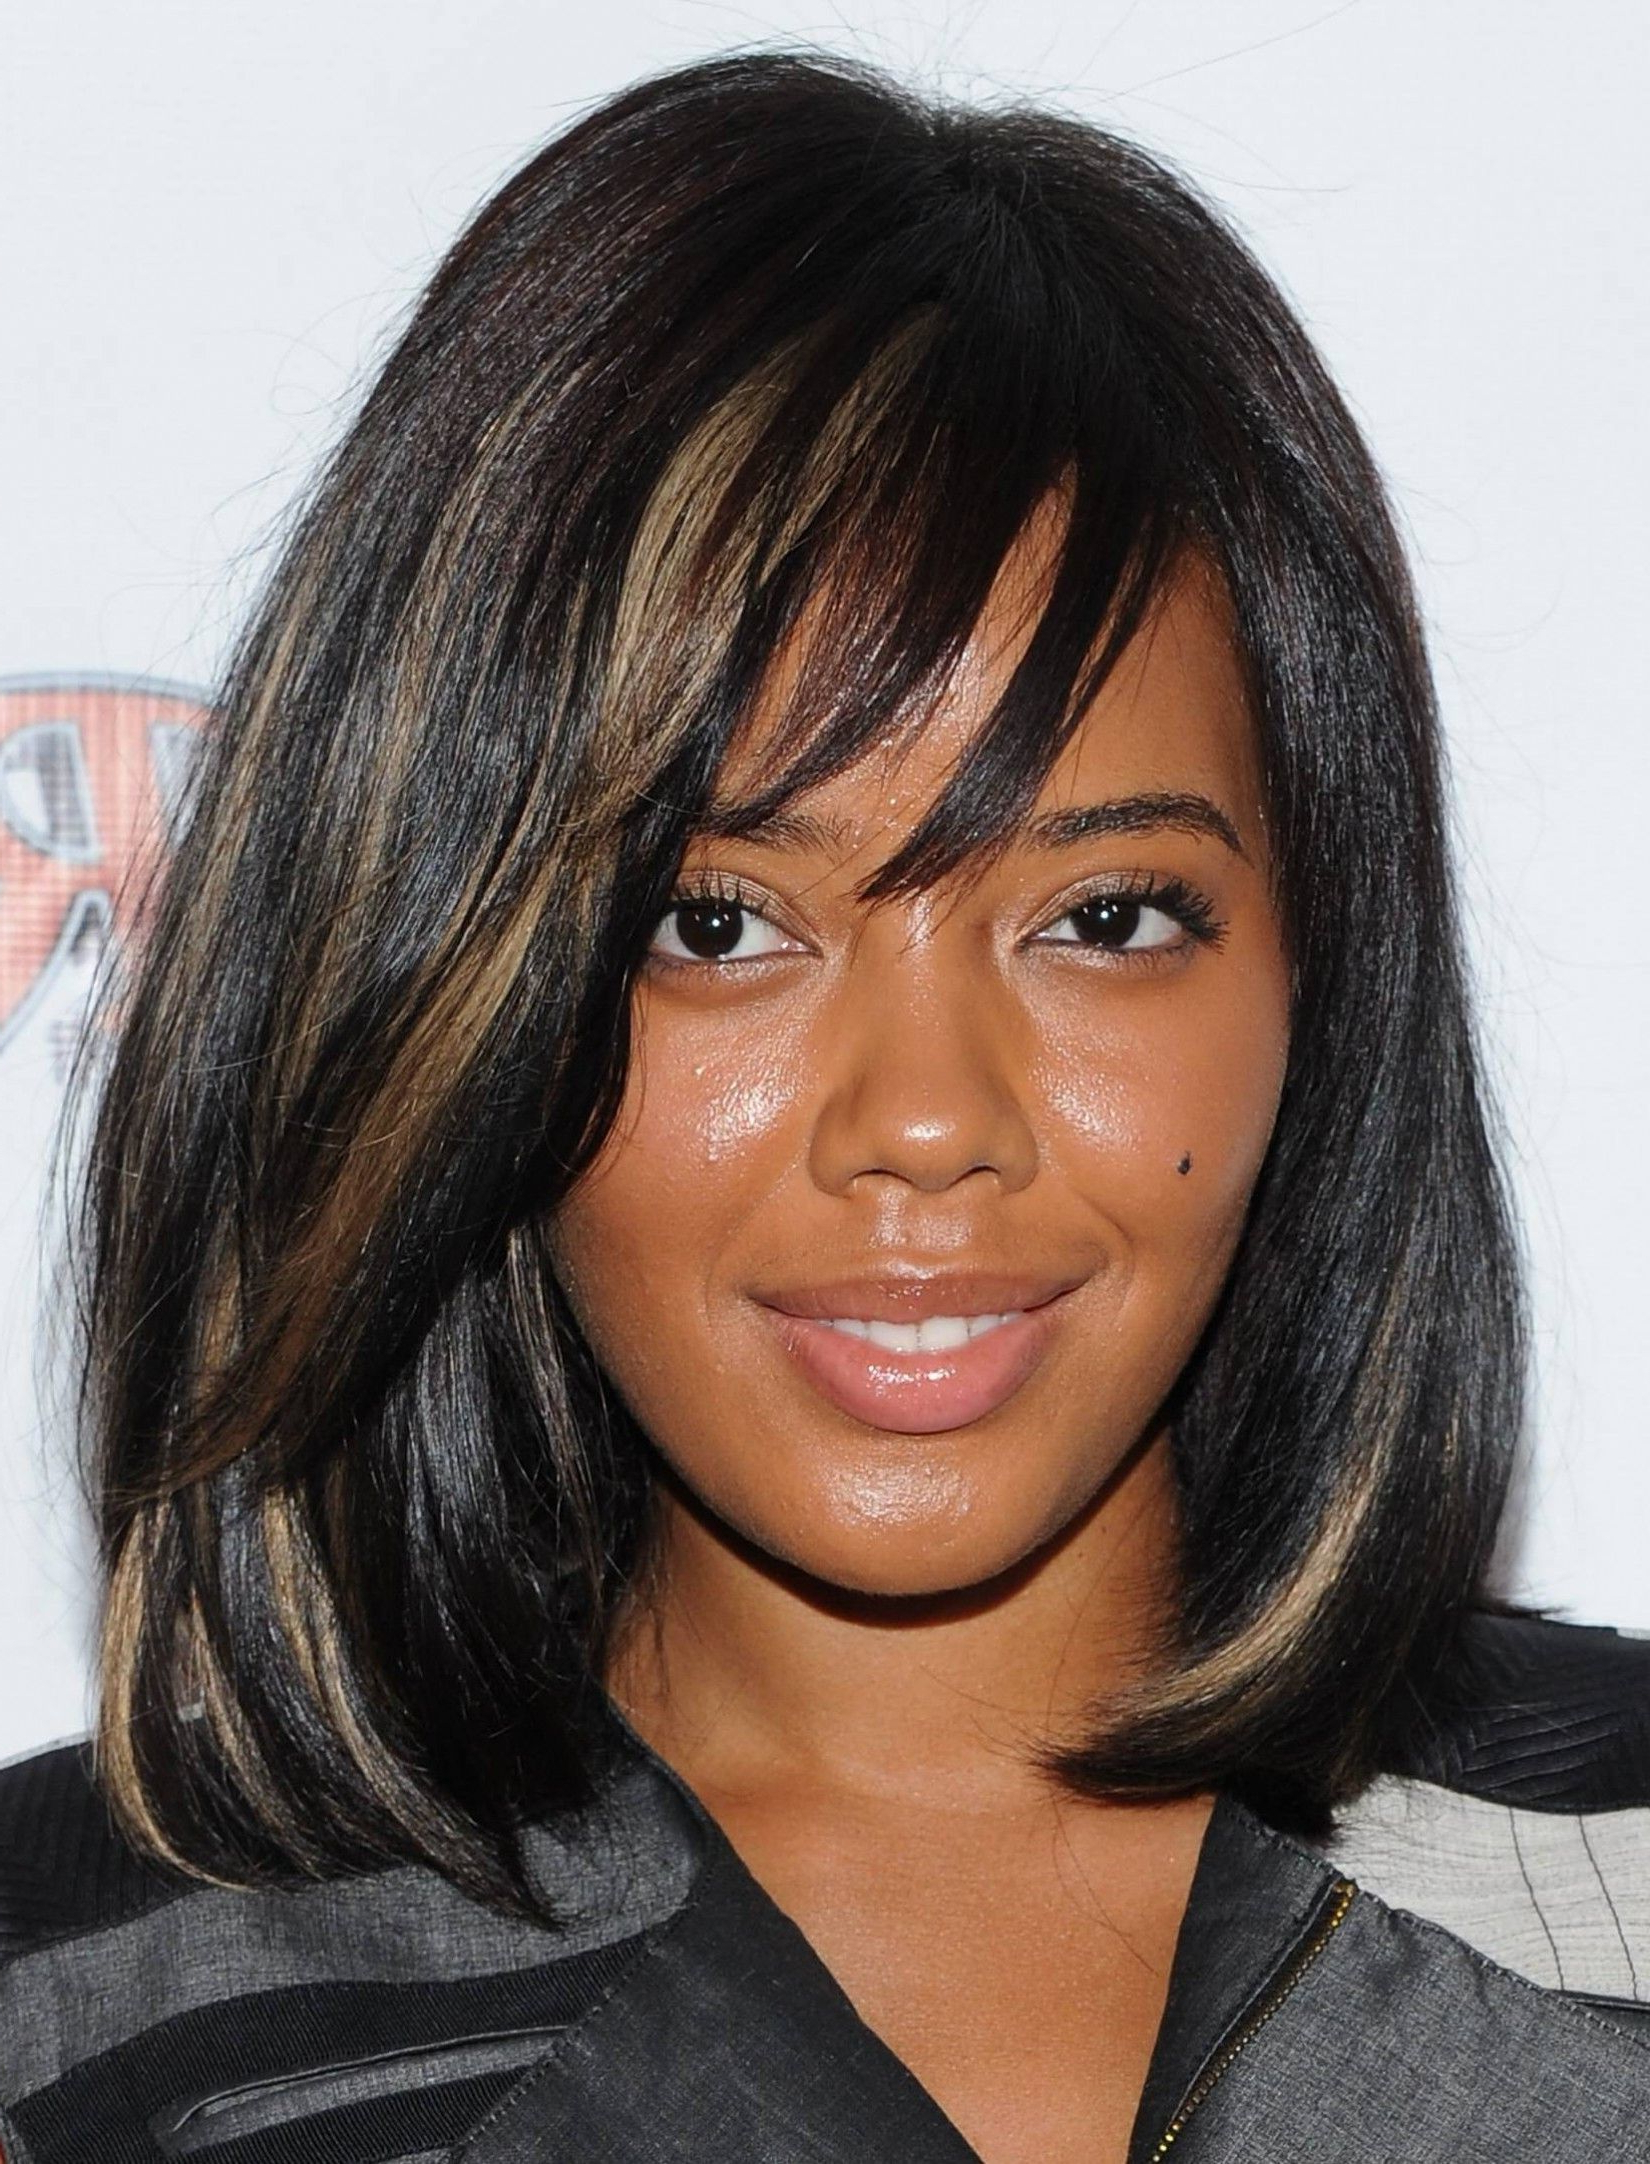 Well Liked Medium Haircuts For African Women Regarding Black Medium Haircuts For Women Lenght Hair (View 19 of 20)